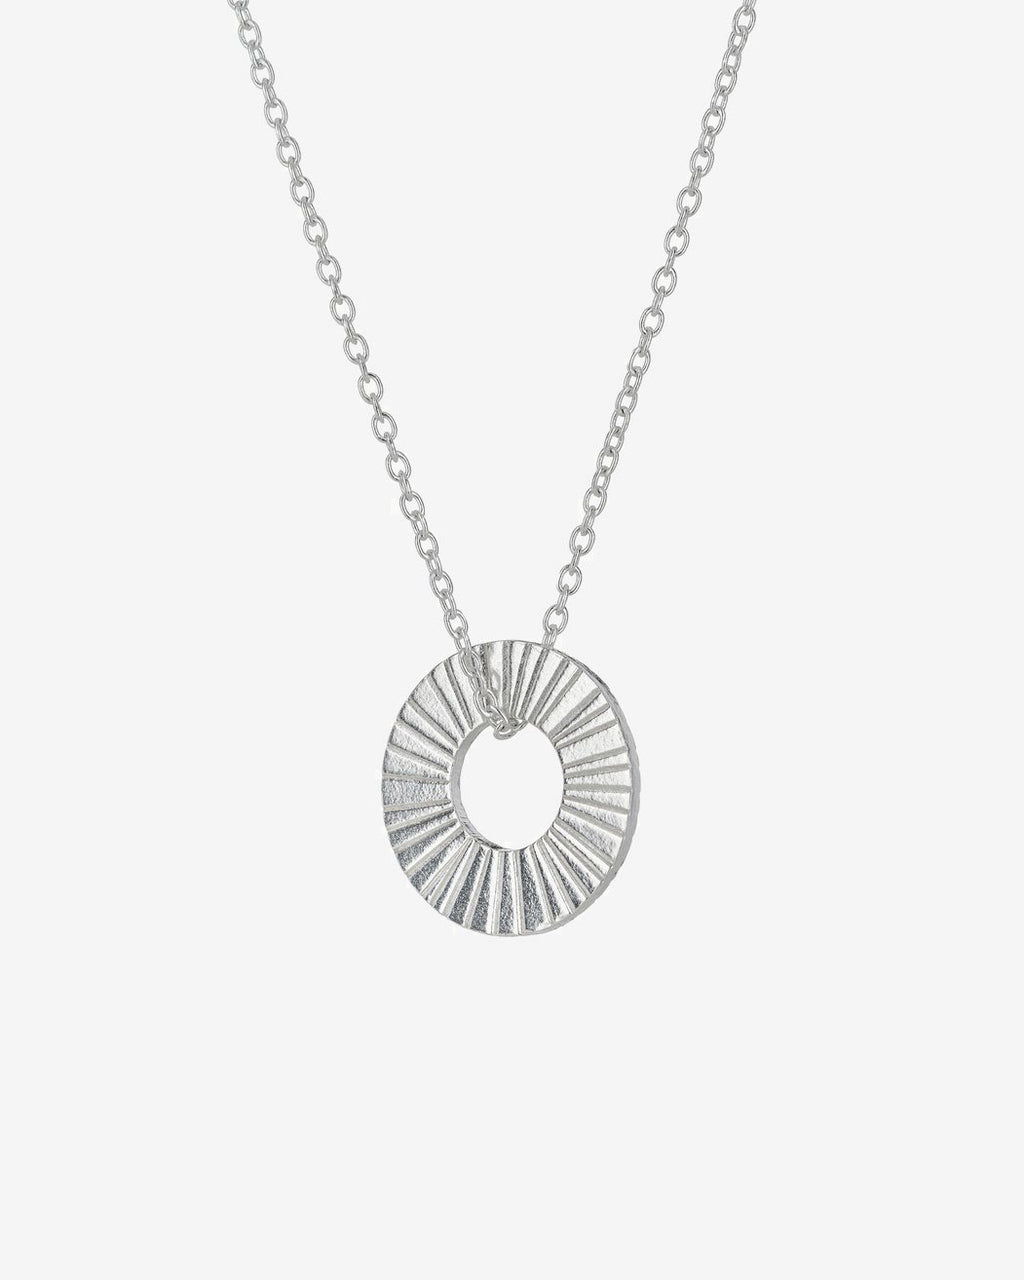 SurfGirl Beach Boutique Ladies Silver Surfside Hoop Necklace by One & Eight Jewellery